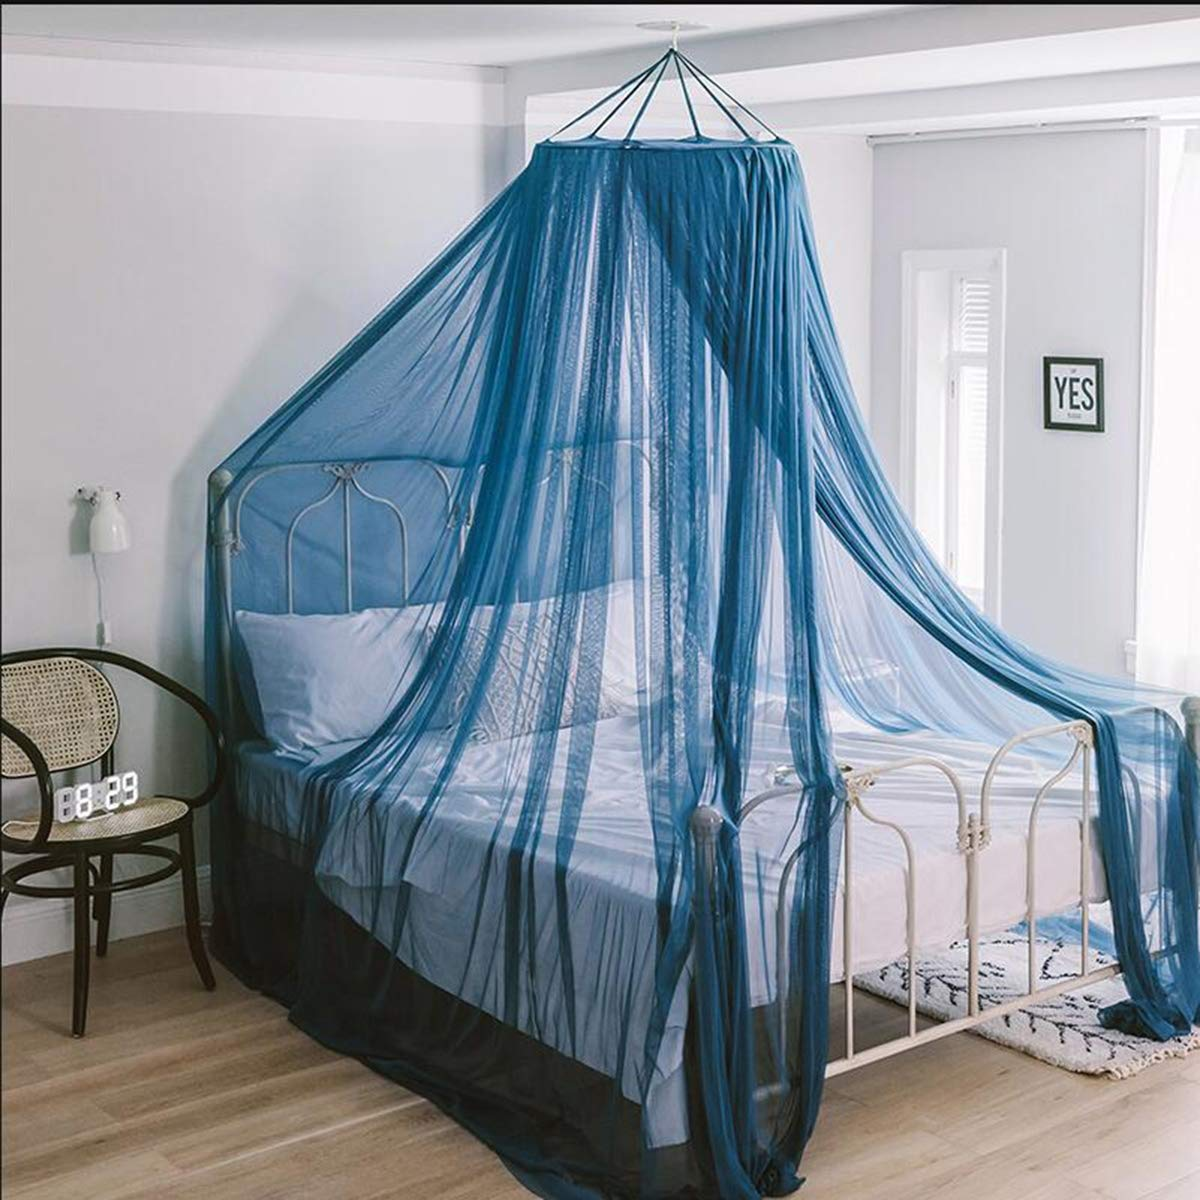 AILY Bed Canopy for Princess Girls Mosquito Net, Round Lace Dome Canopy Bed Curtains for Single to King Size Beds, Yarn Play Tent Bedding House Decoration Reading Nook Cotton,Blue,1.0m(3.3ft) Bed